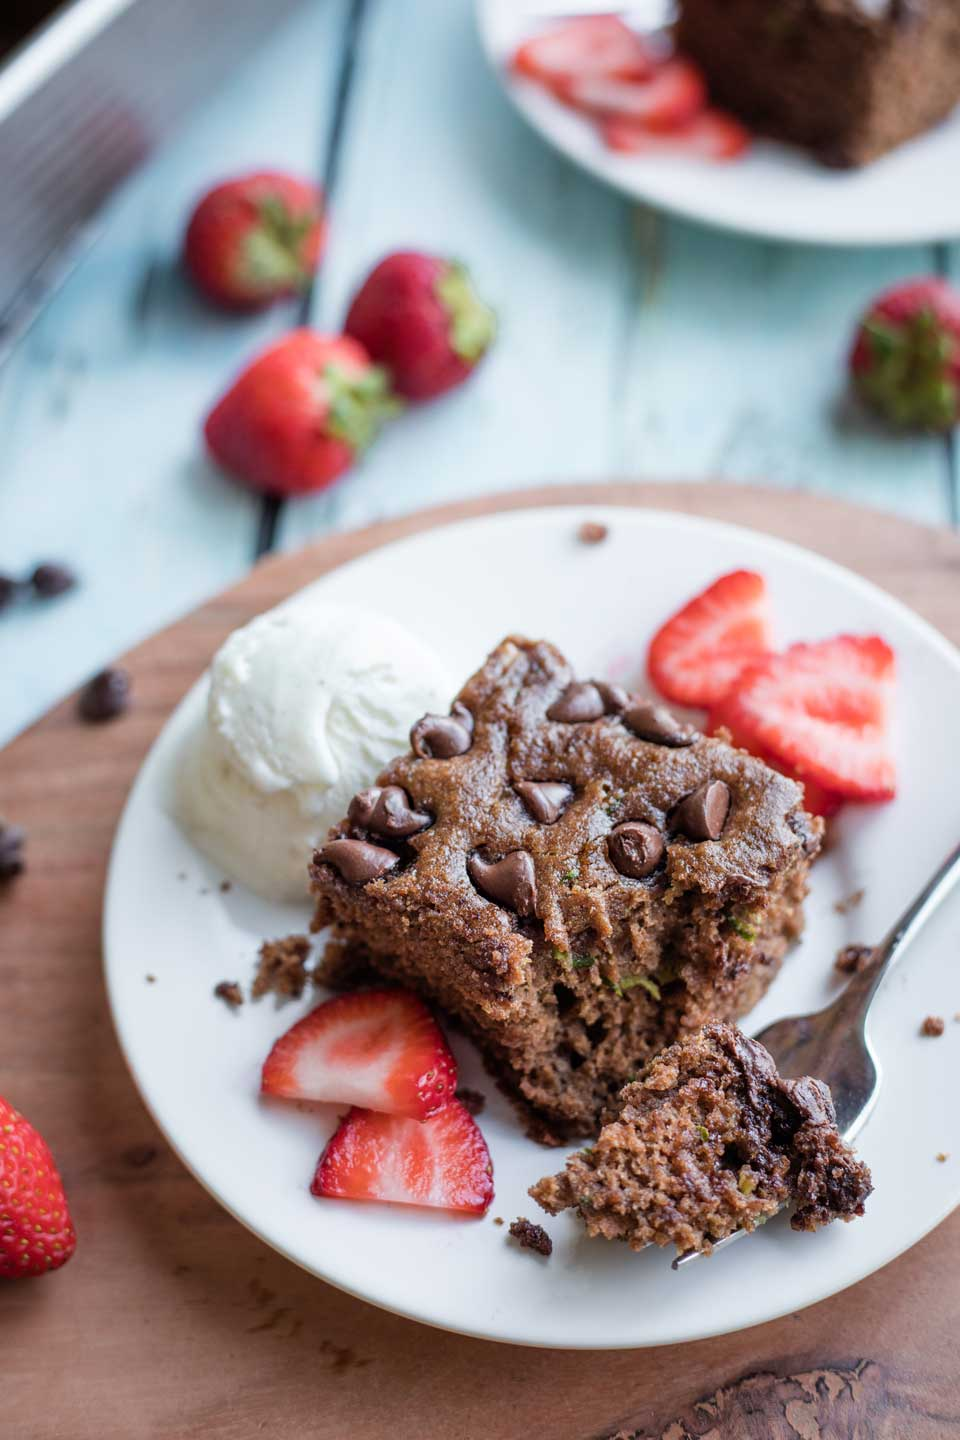 one slice of chocolate zucchini cake on a white plate that's resting on a wooden charger, with strawberry slices and ice cream, with a forkful bite taken out, and extra strawberries in the background